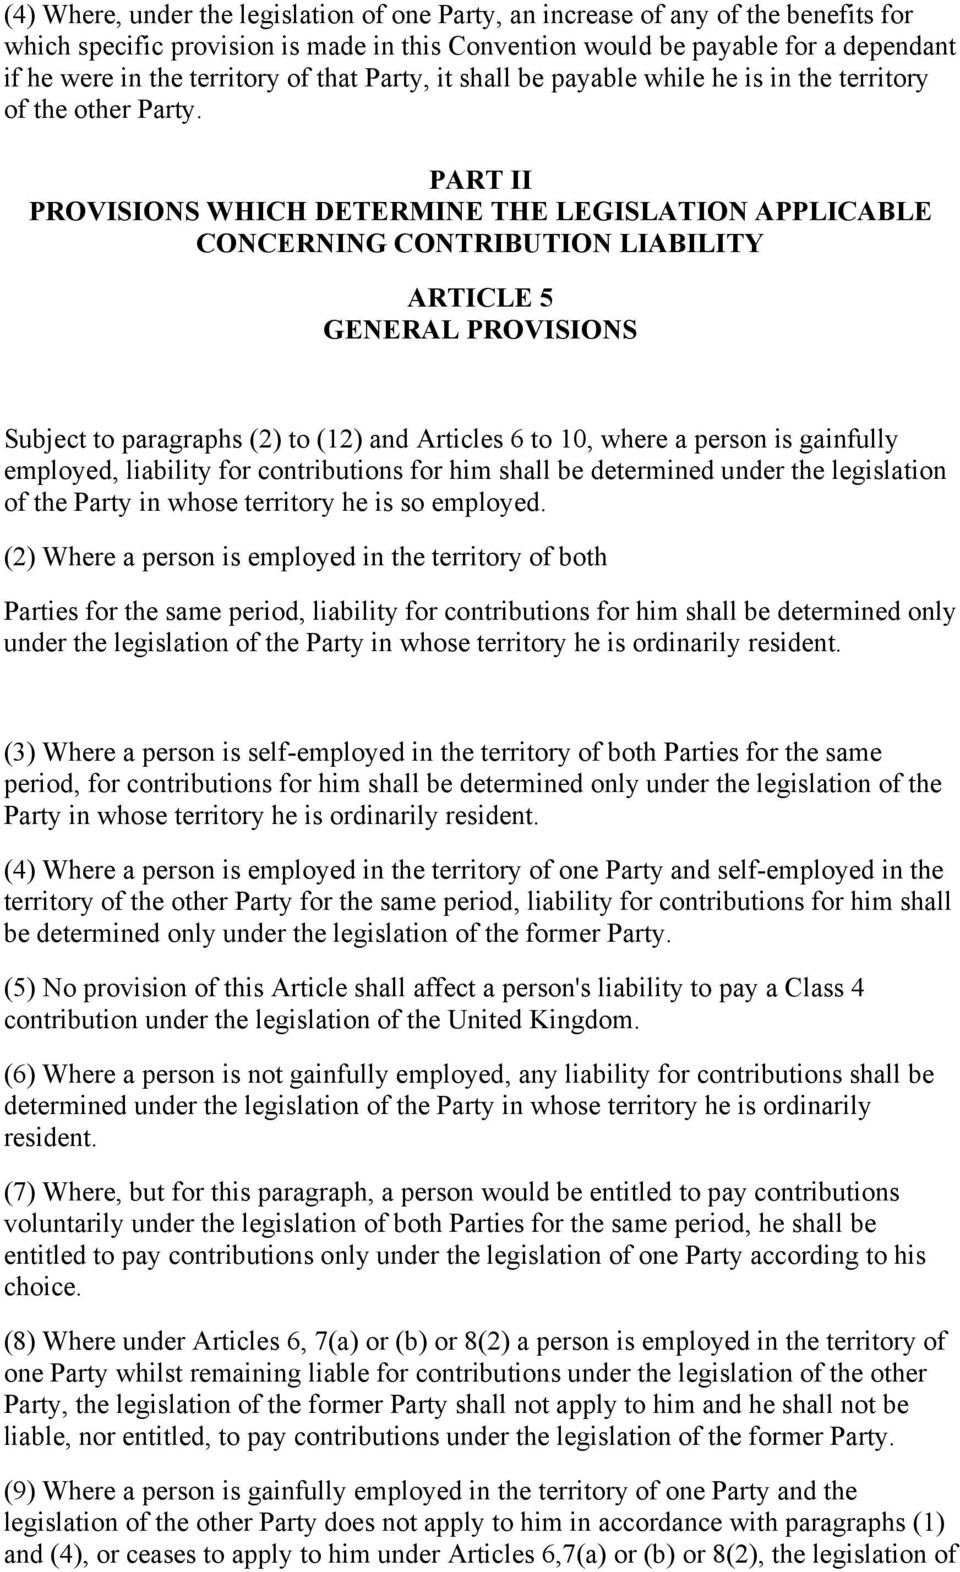 PART II PROVISIONS WHICH DETERMINE THE LEGISLATION APPLICABLE CONCERNING CONTRIBUTION LIABILITY ARTICLE 5 GENERAL PROVISIONS Subject to paragraphs (2) to (12) and Articles 6 to 10, where a person is